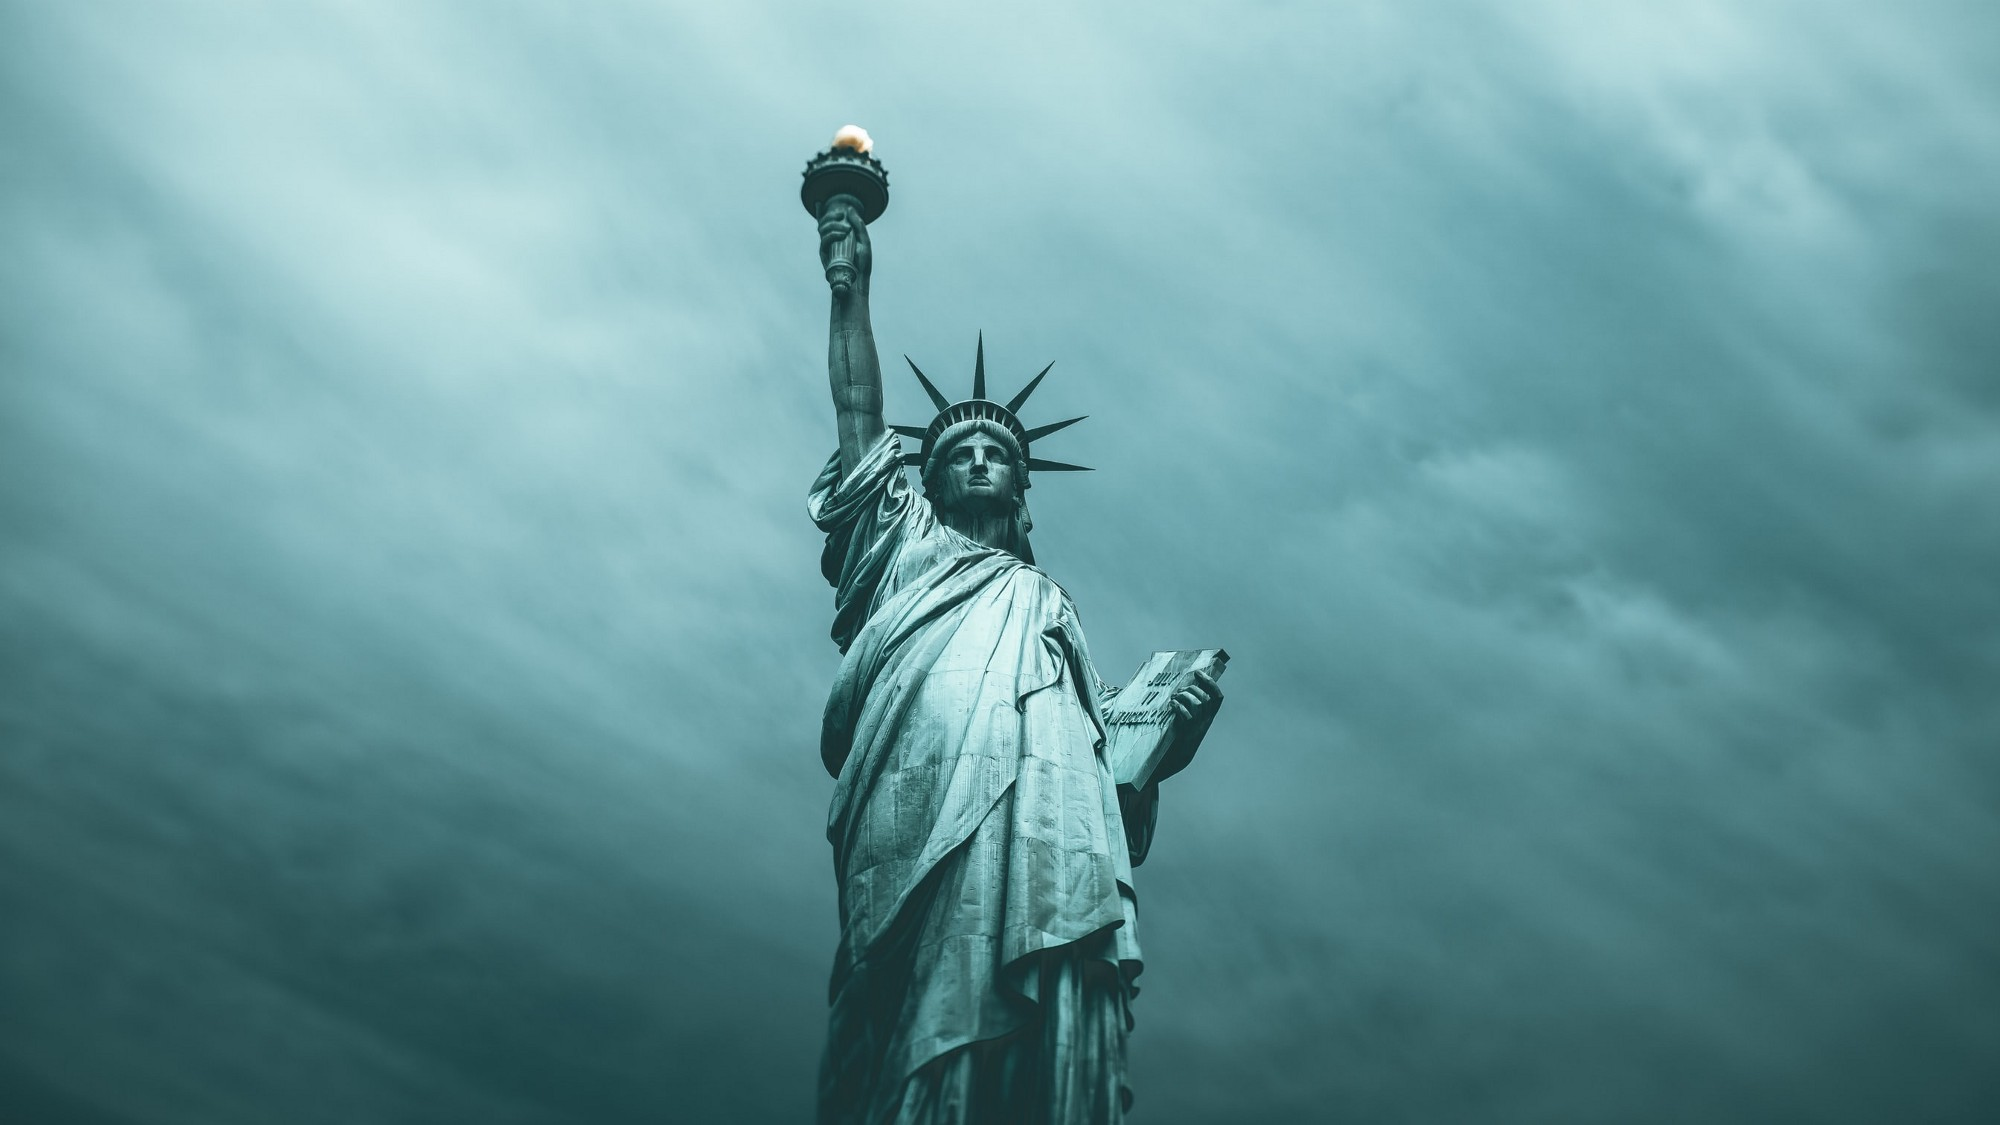 Ethereal green shifted photo of the statue of liberty against a luminous cloudy sky.